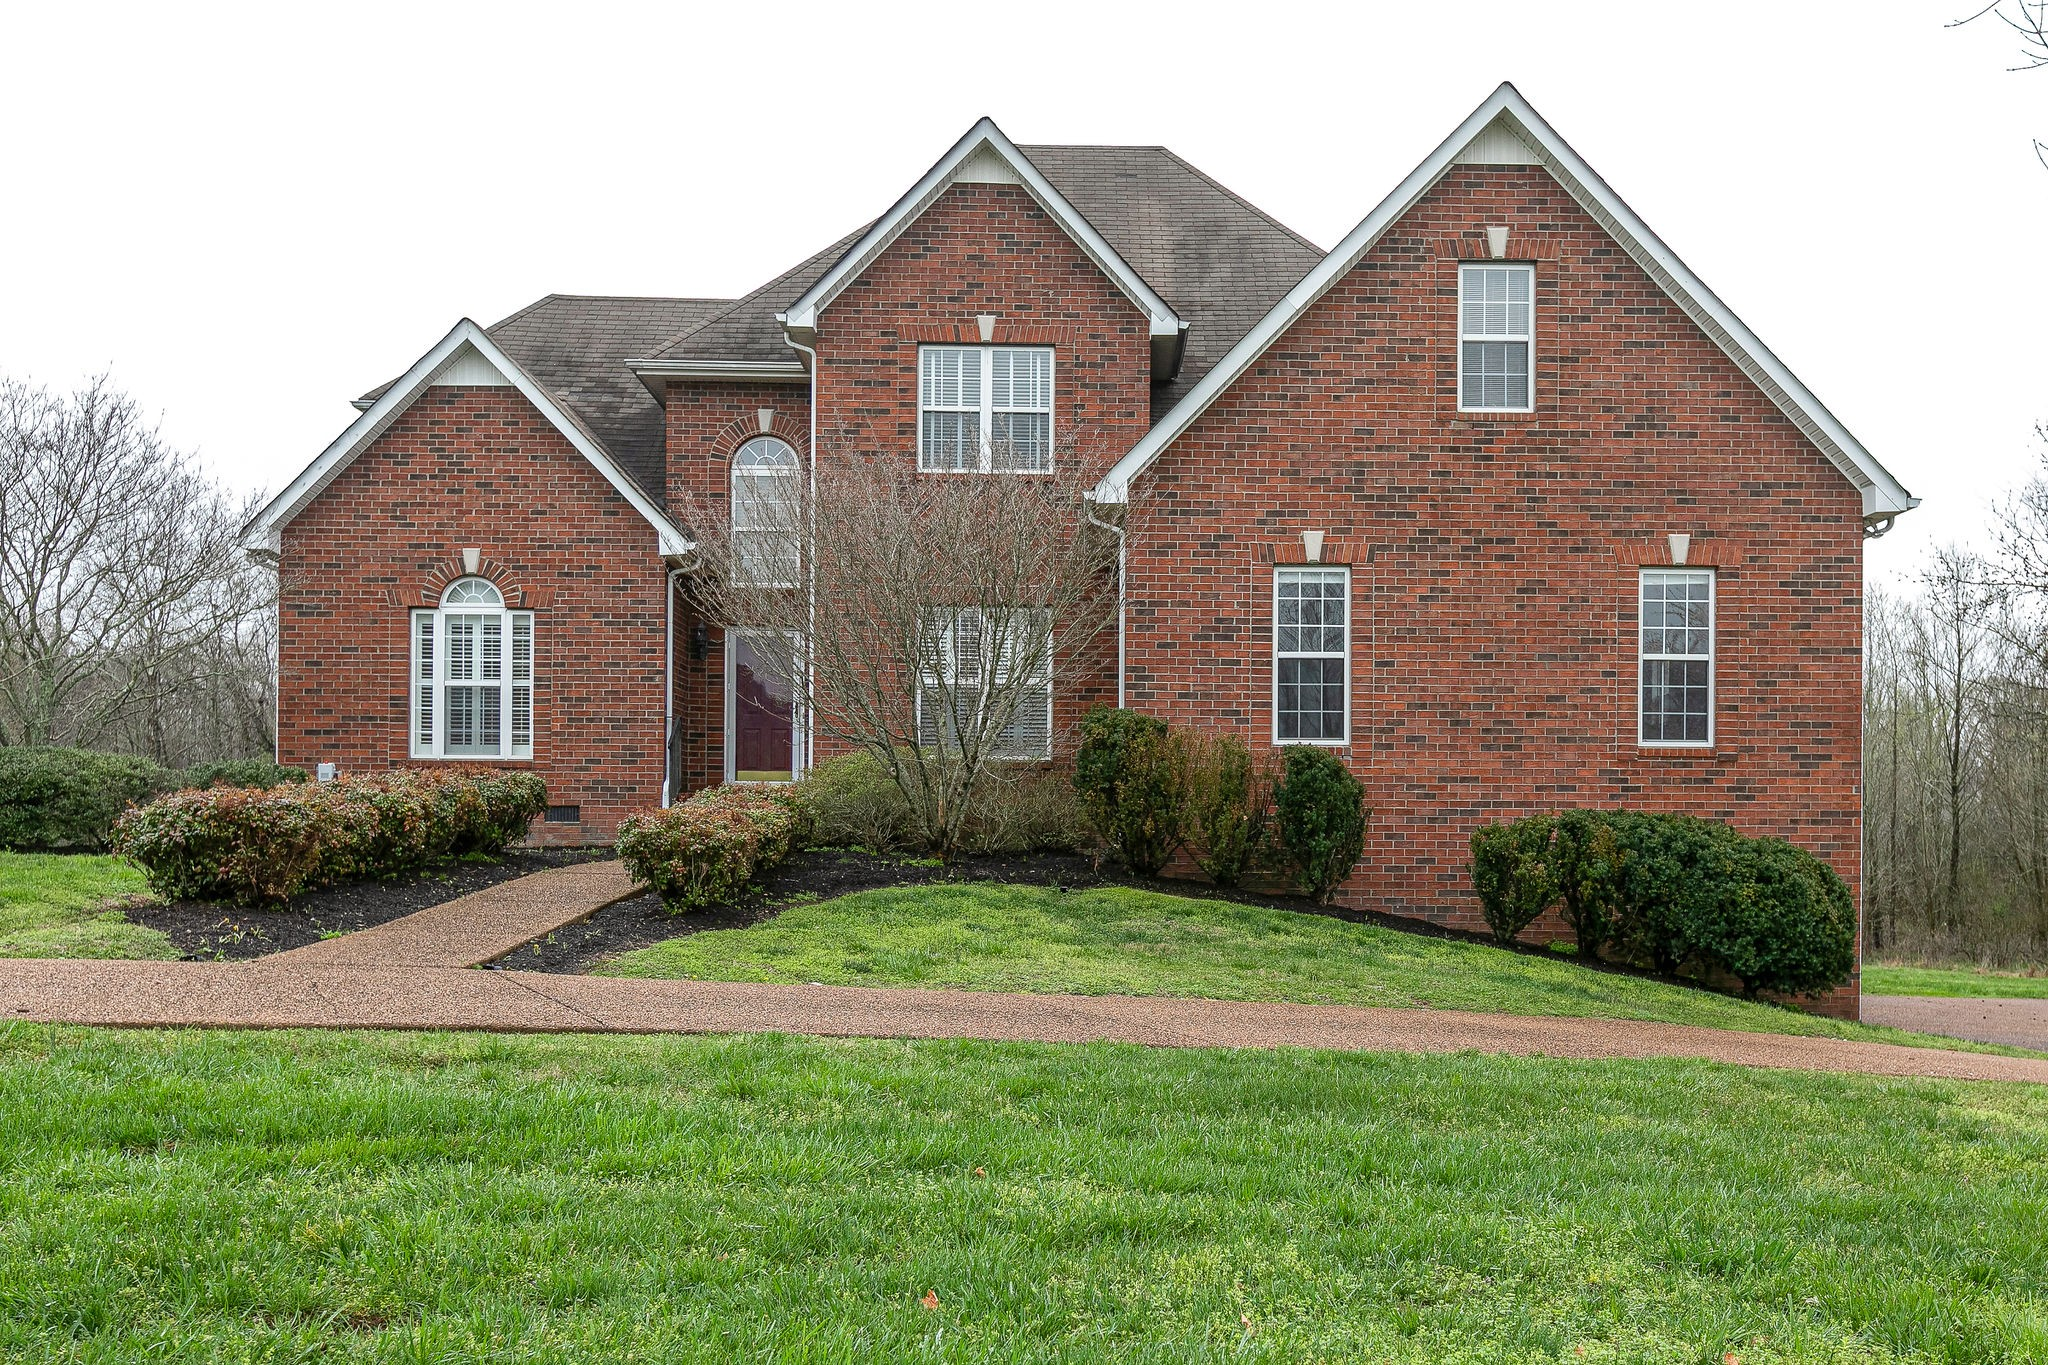 6890 Bizzell Howell Ln, College Grove, TN 37046 - College Grove, TN real estate listing